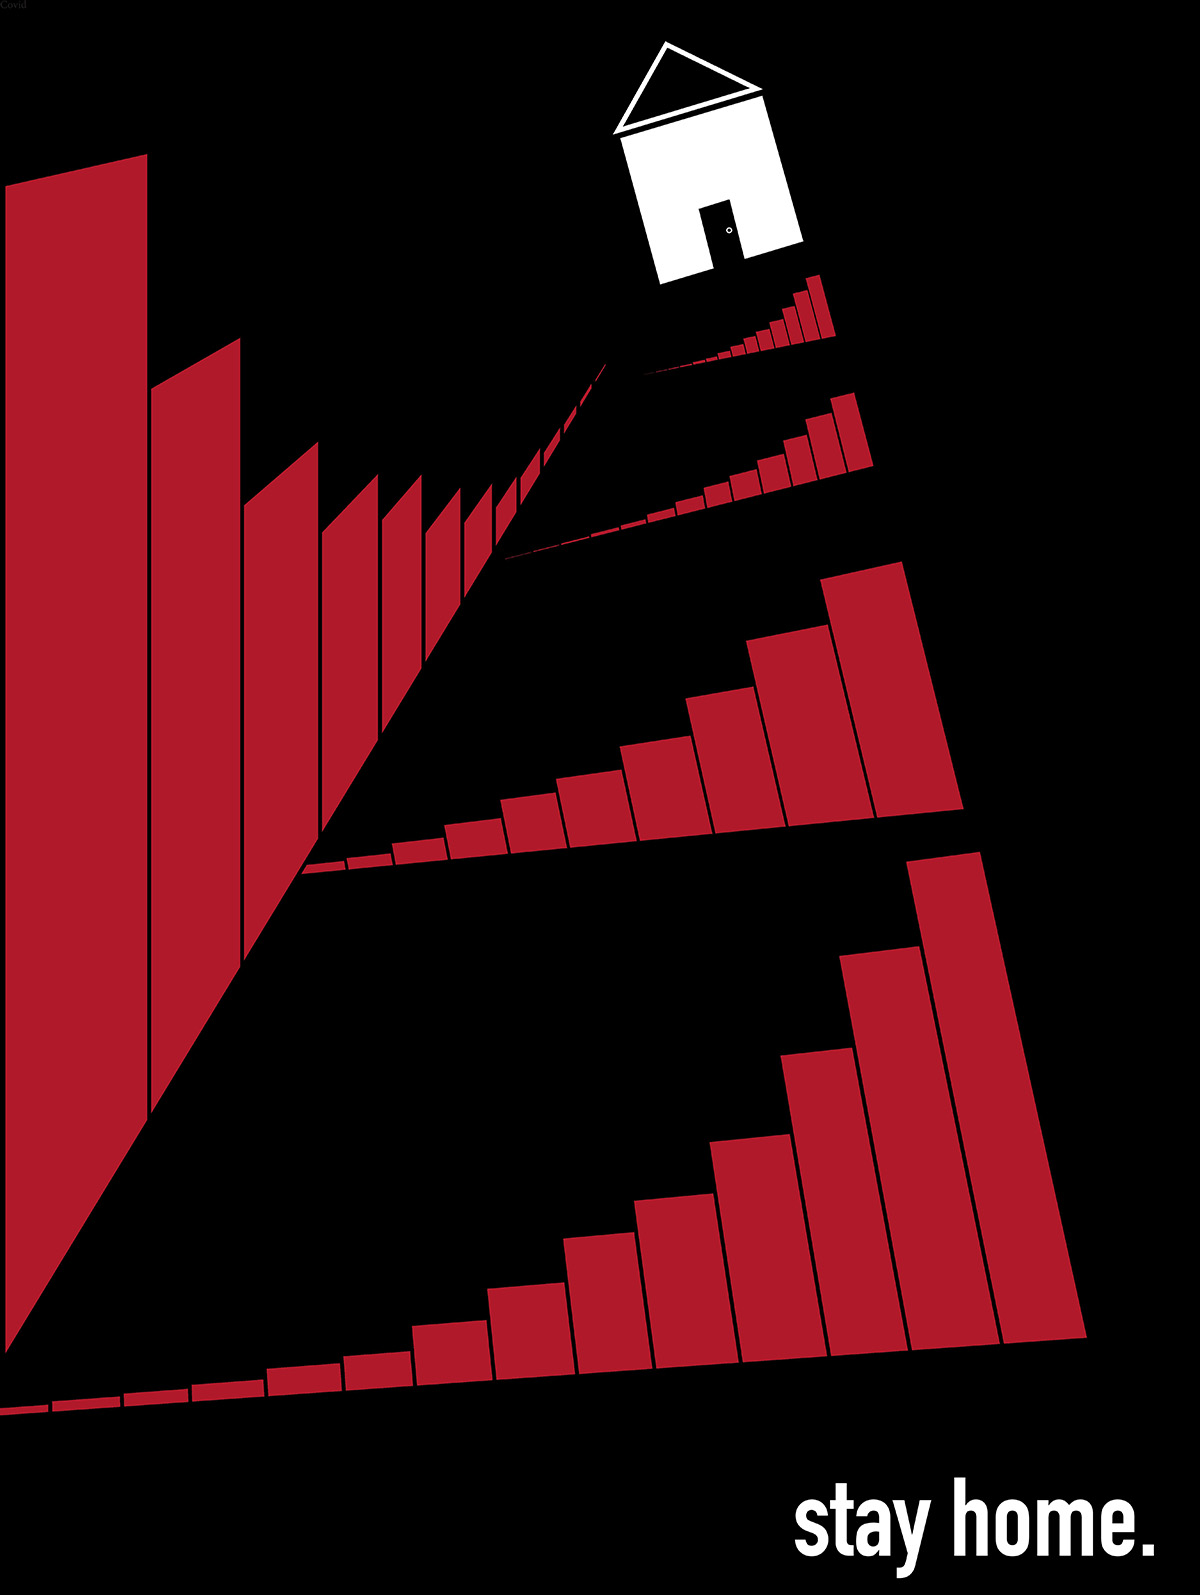 A black and red poster urging people to stay home during the global pandemic.